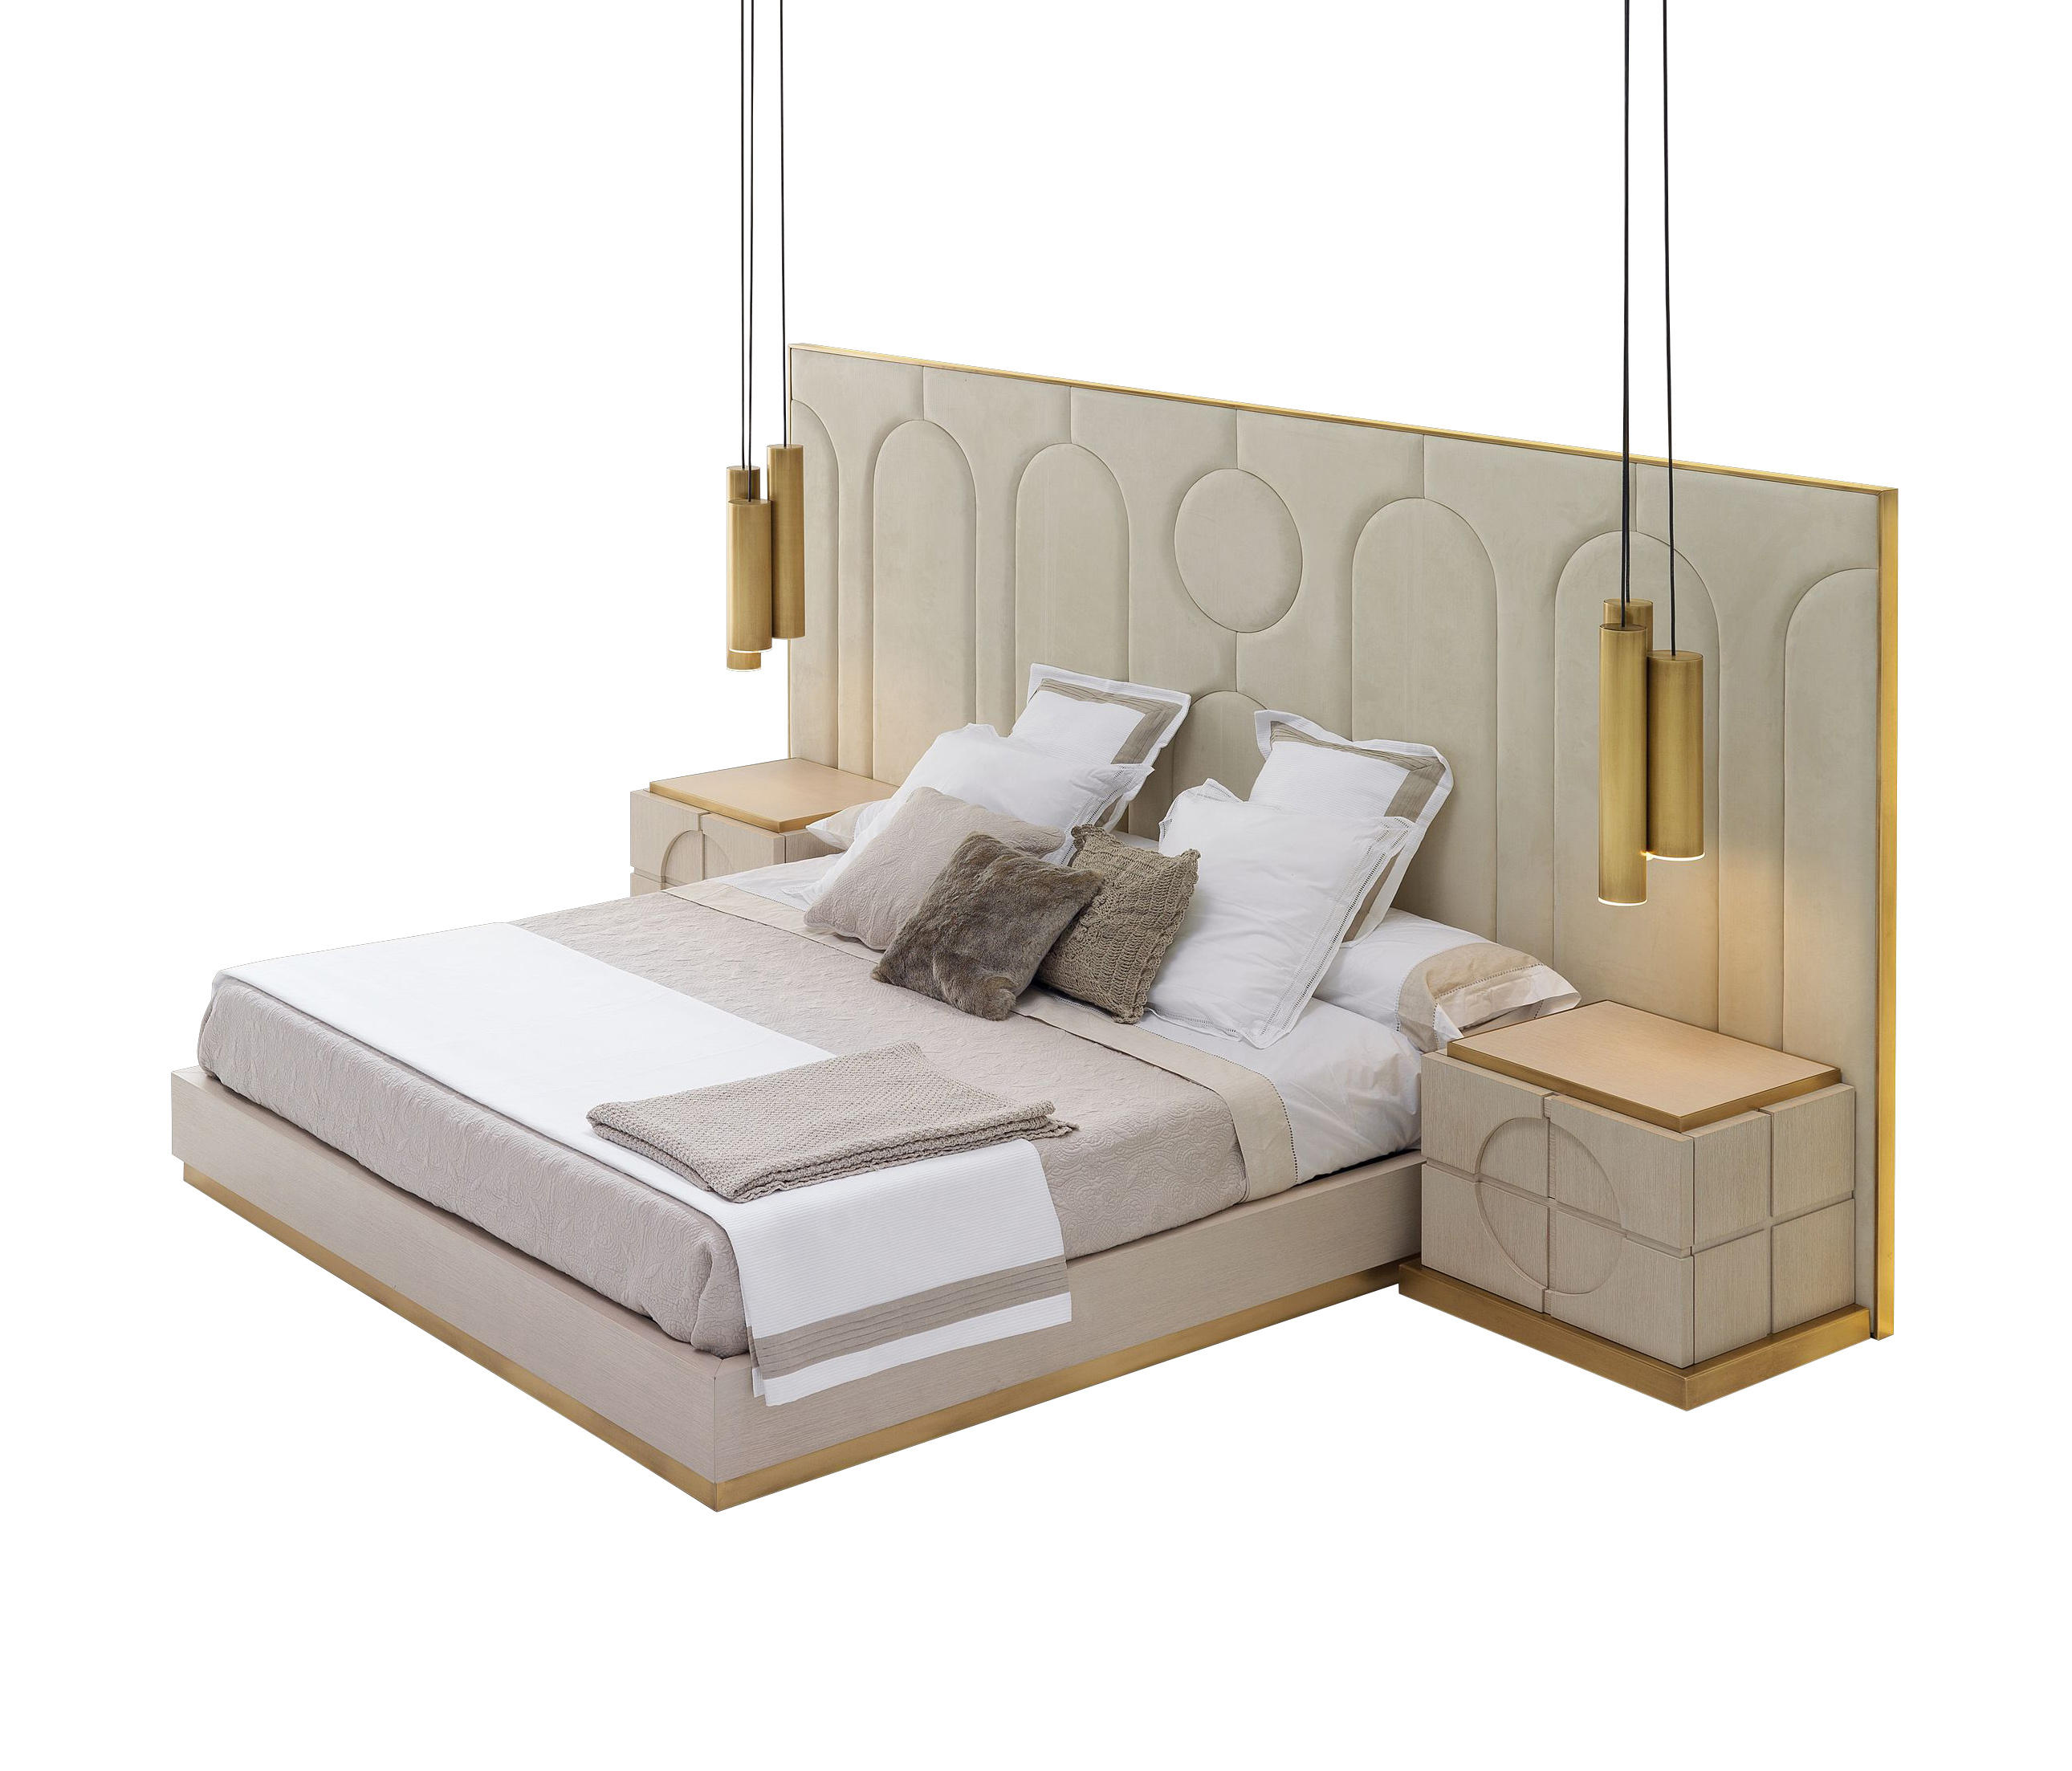 PARMA BED SET Double beds from MOBILFRESNO ALTERNATIVE